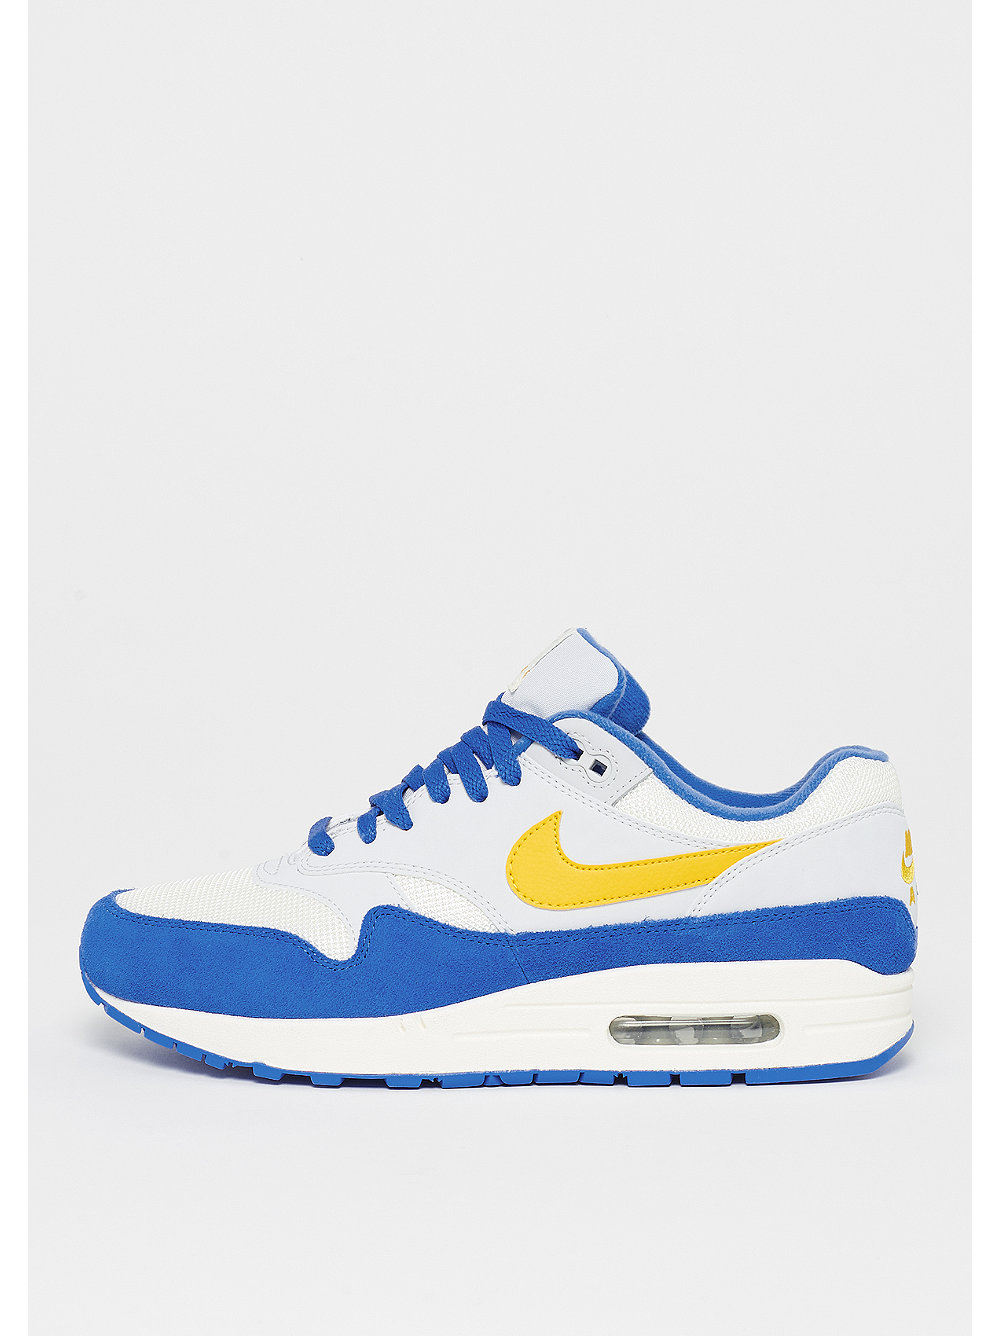 outlet store 560d1 71df8 NIKE Air Max 1 sail amarillo pure platinum signal blue